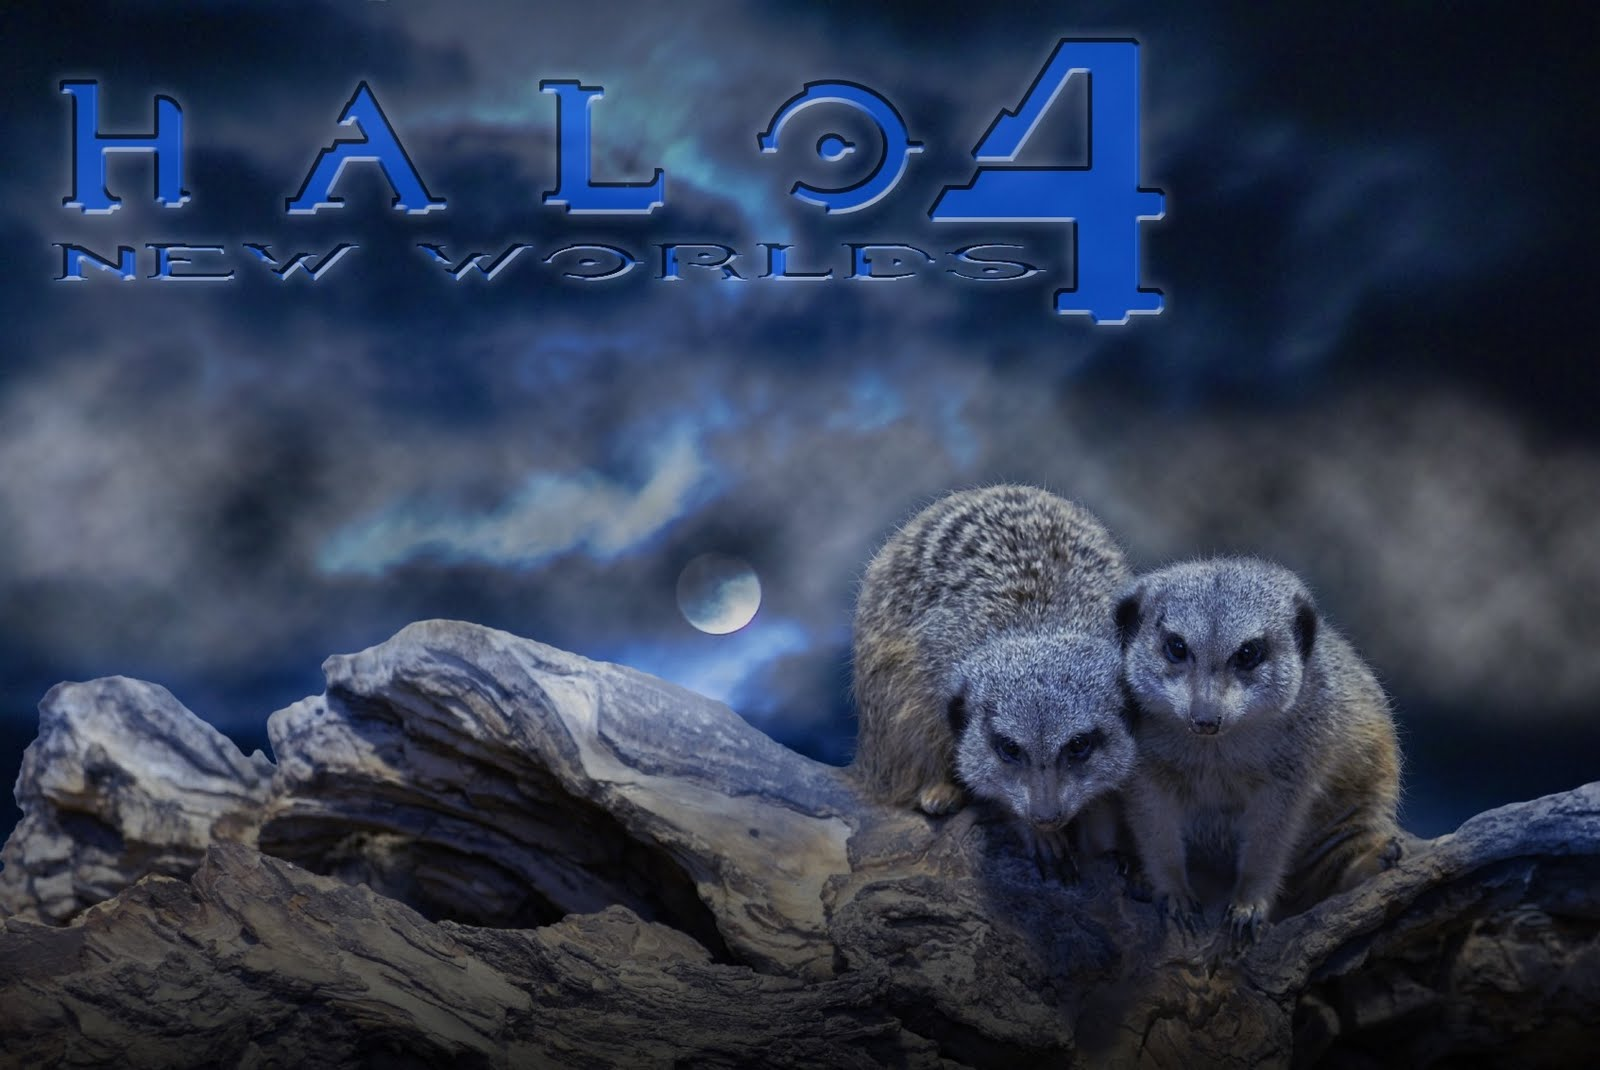 Halo 4 New Game HD Wallpapers Download Wallpapers in HD for your 1600x1070